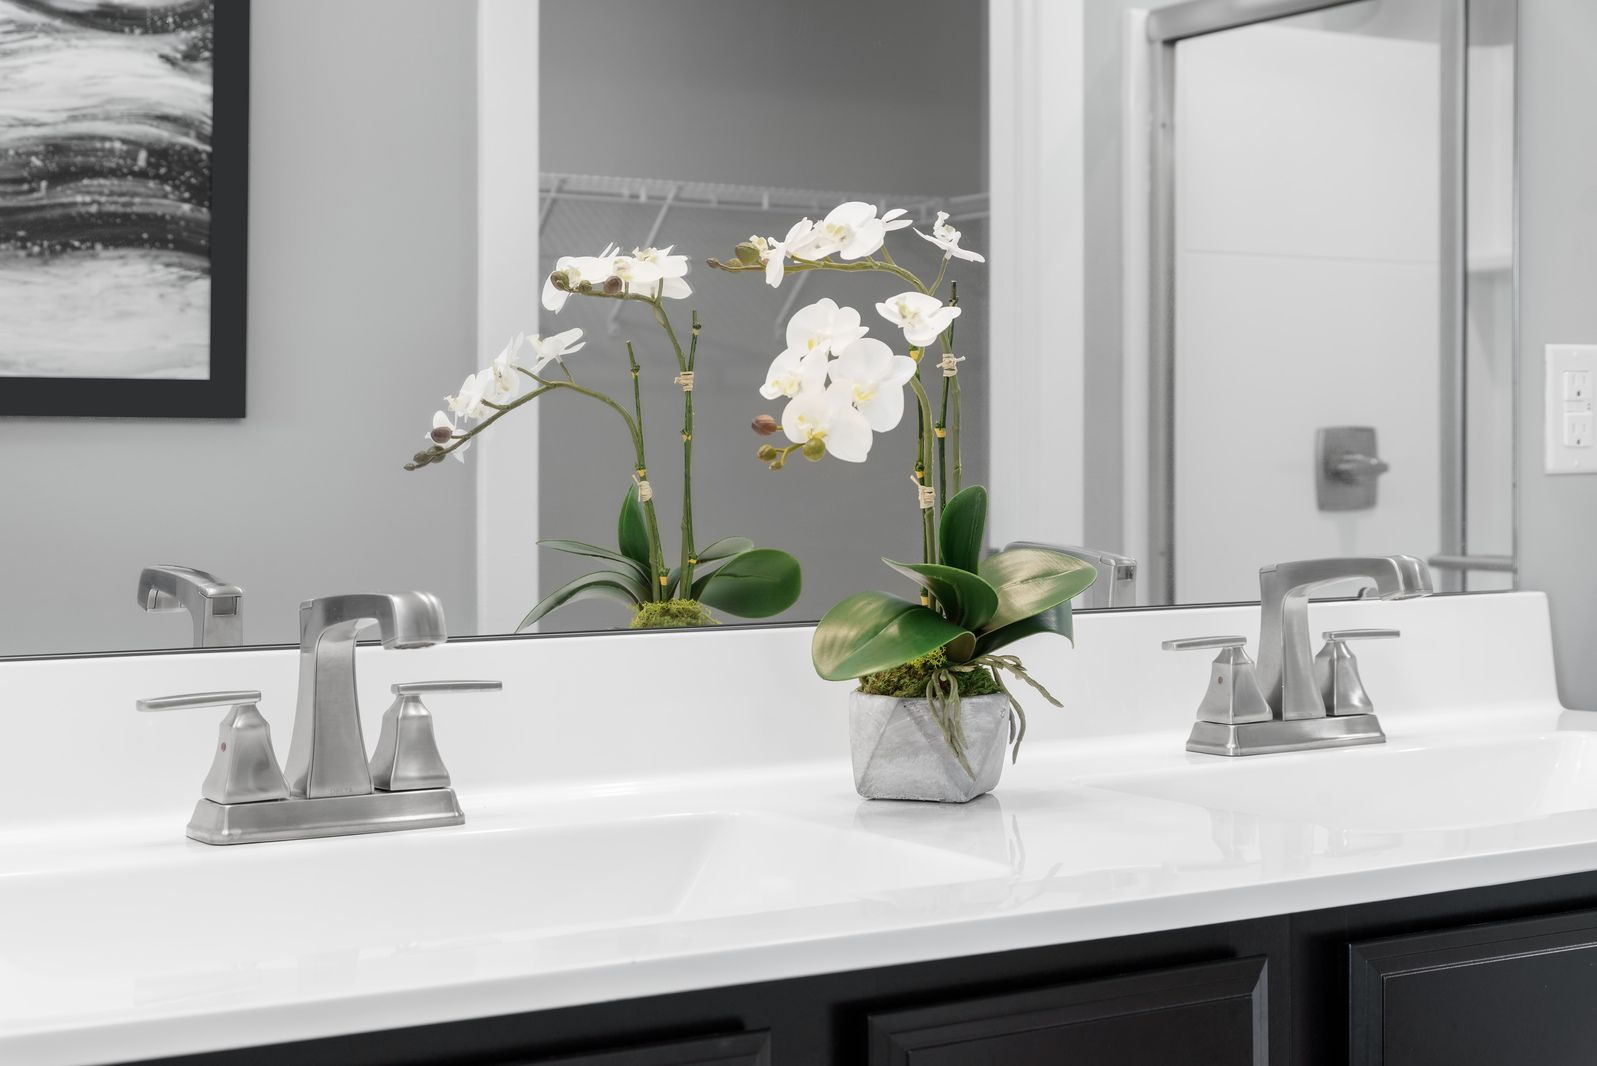 Bathroom featured in the Grand Bahama By Ryan Homes in Sussex, DE